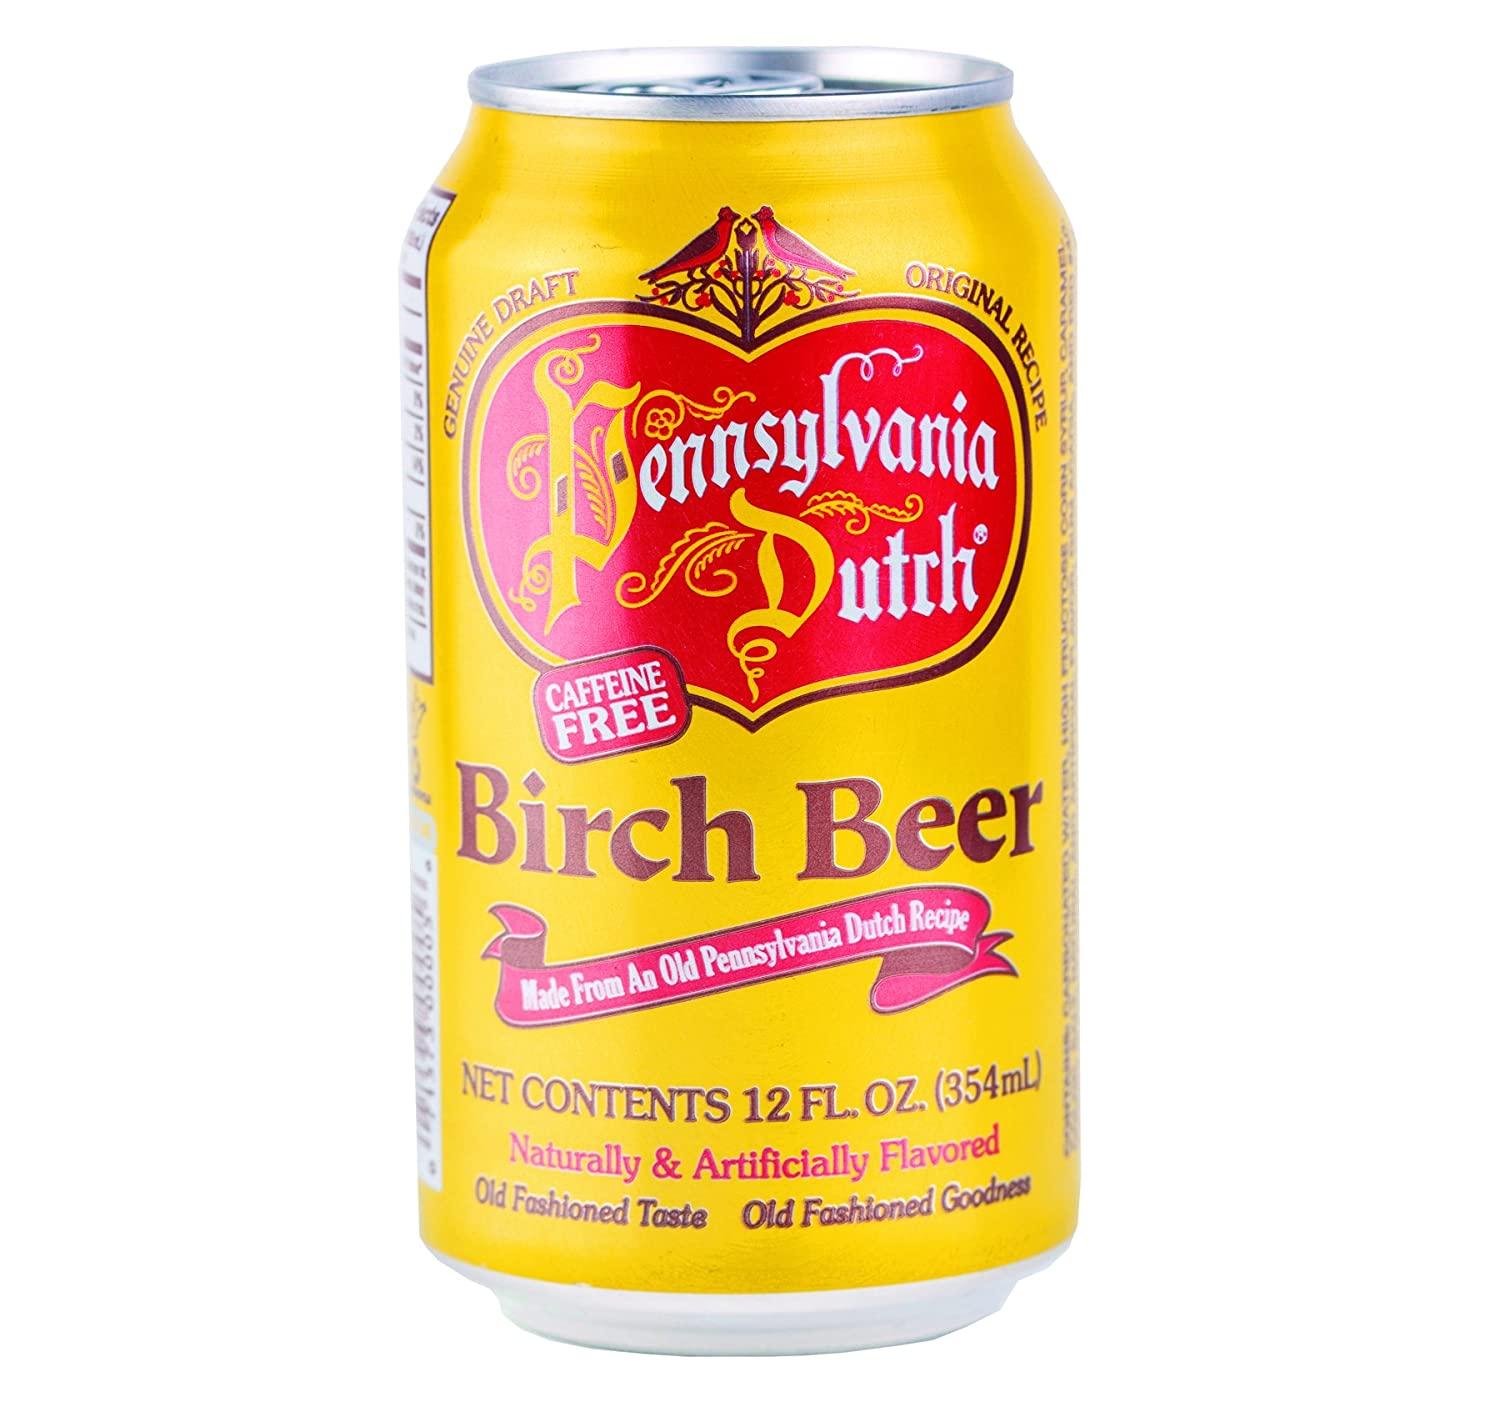 PA Dutch Birch Beer, Popular Amish Beverage, 12 Oz. Cans (One 6-Pack)